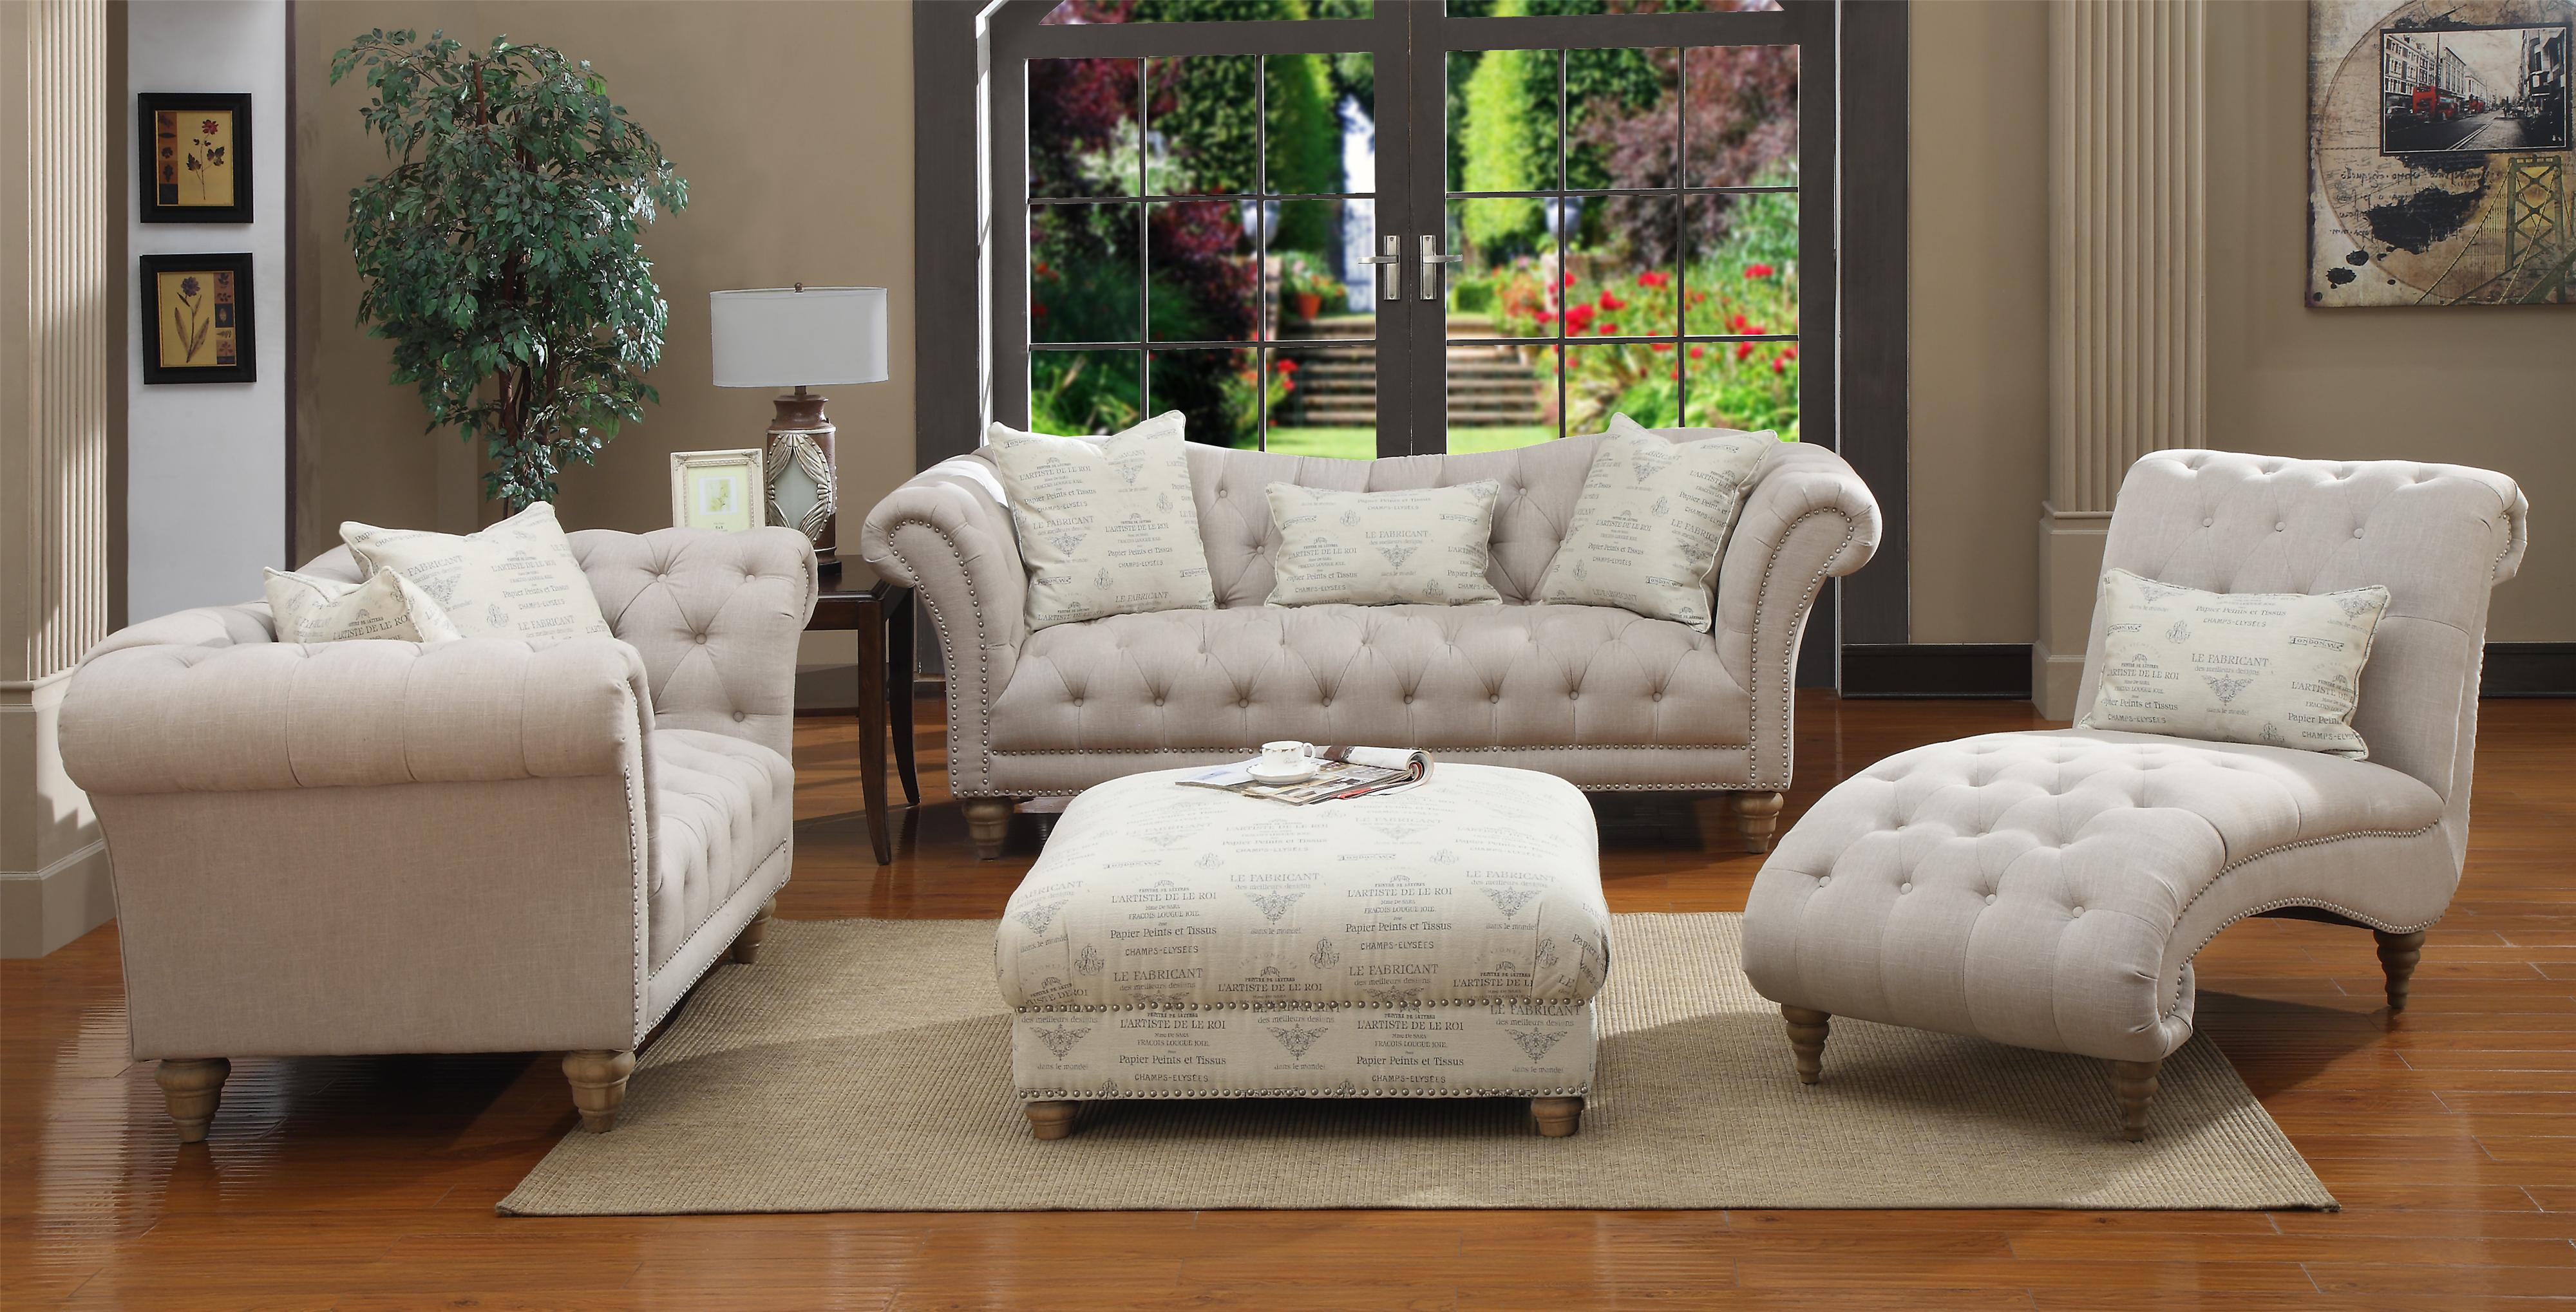 emerald hutton fabric upholstery series linen look nailhead sofa w  - emerald hutton fabric upholstery series linen look nailhead sofa w pillows  kidney pillow  wilson's furniture  sofa bellingham ferndalelynden